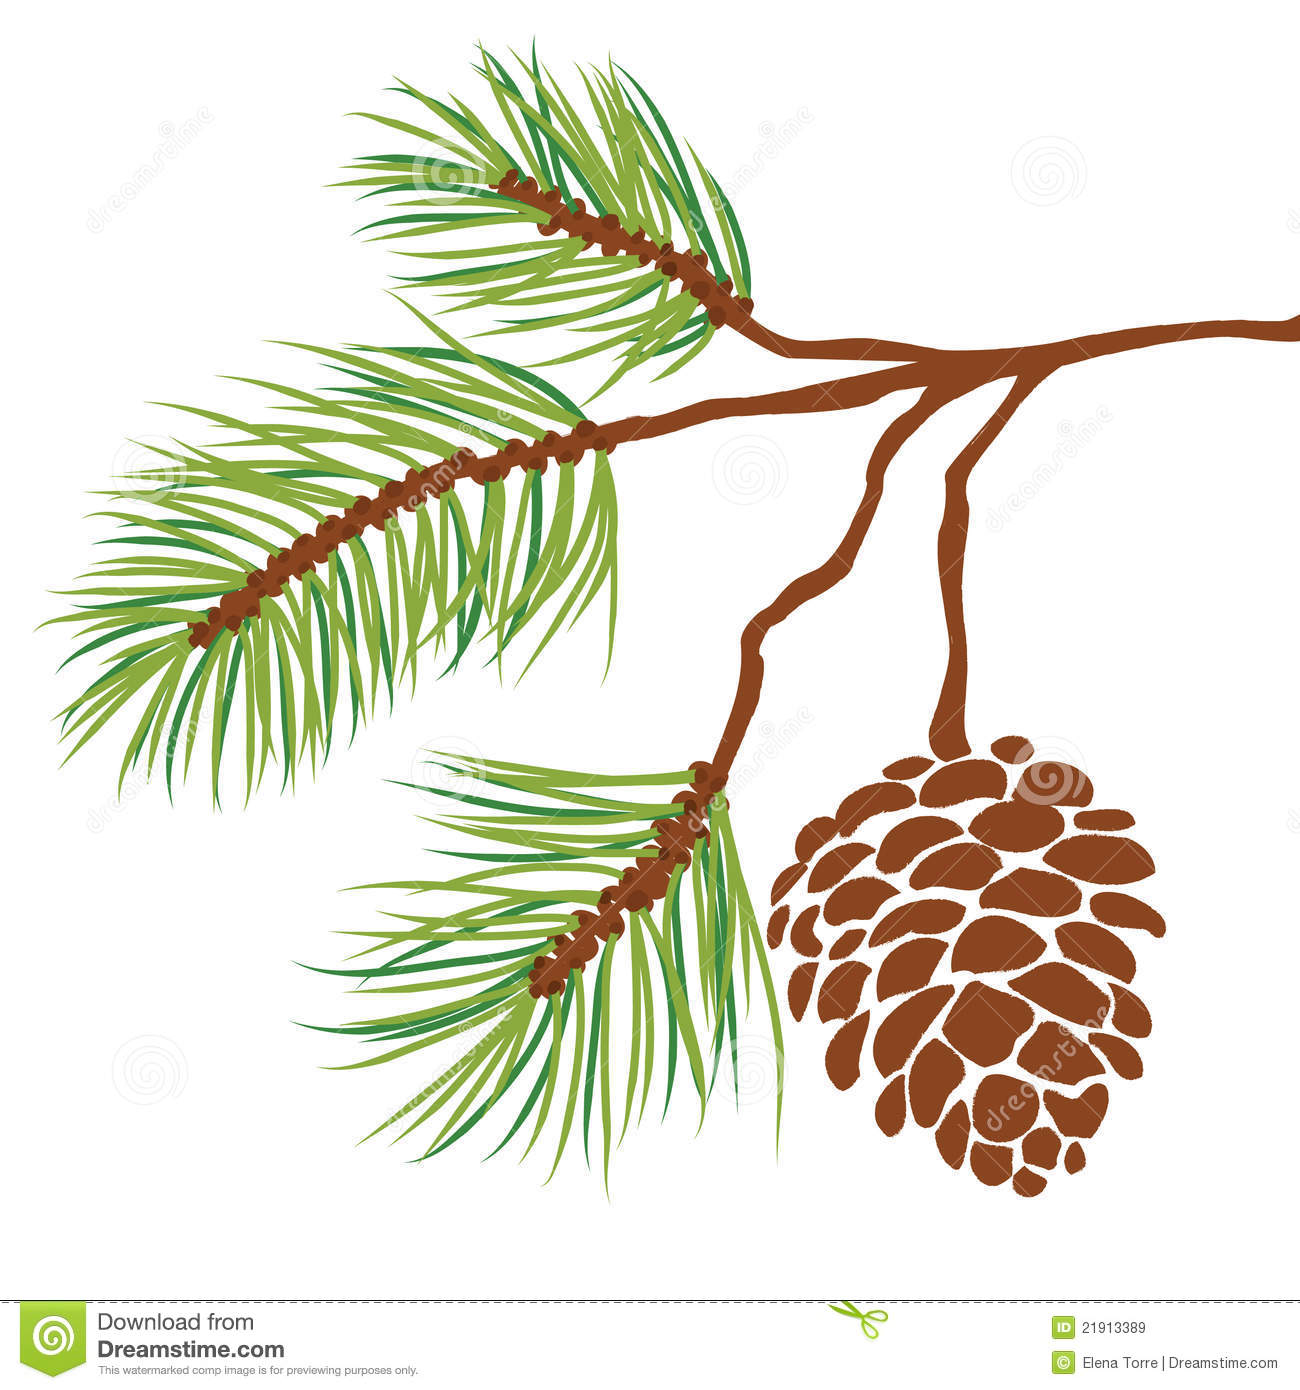 Drawn fir tree And with Cone Vector Tree